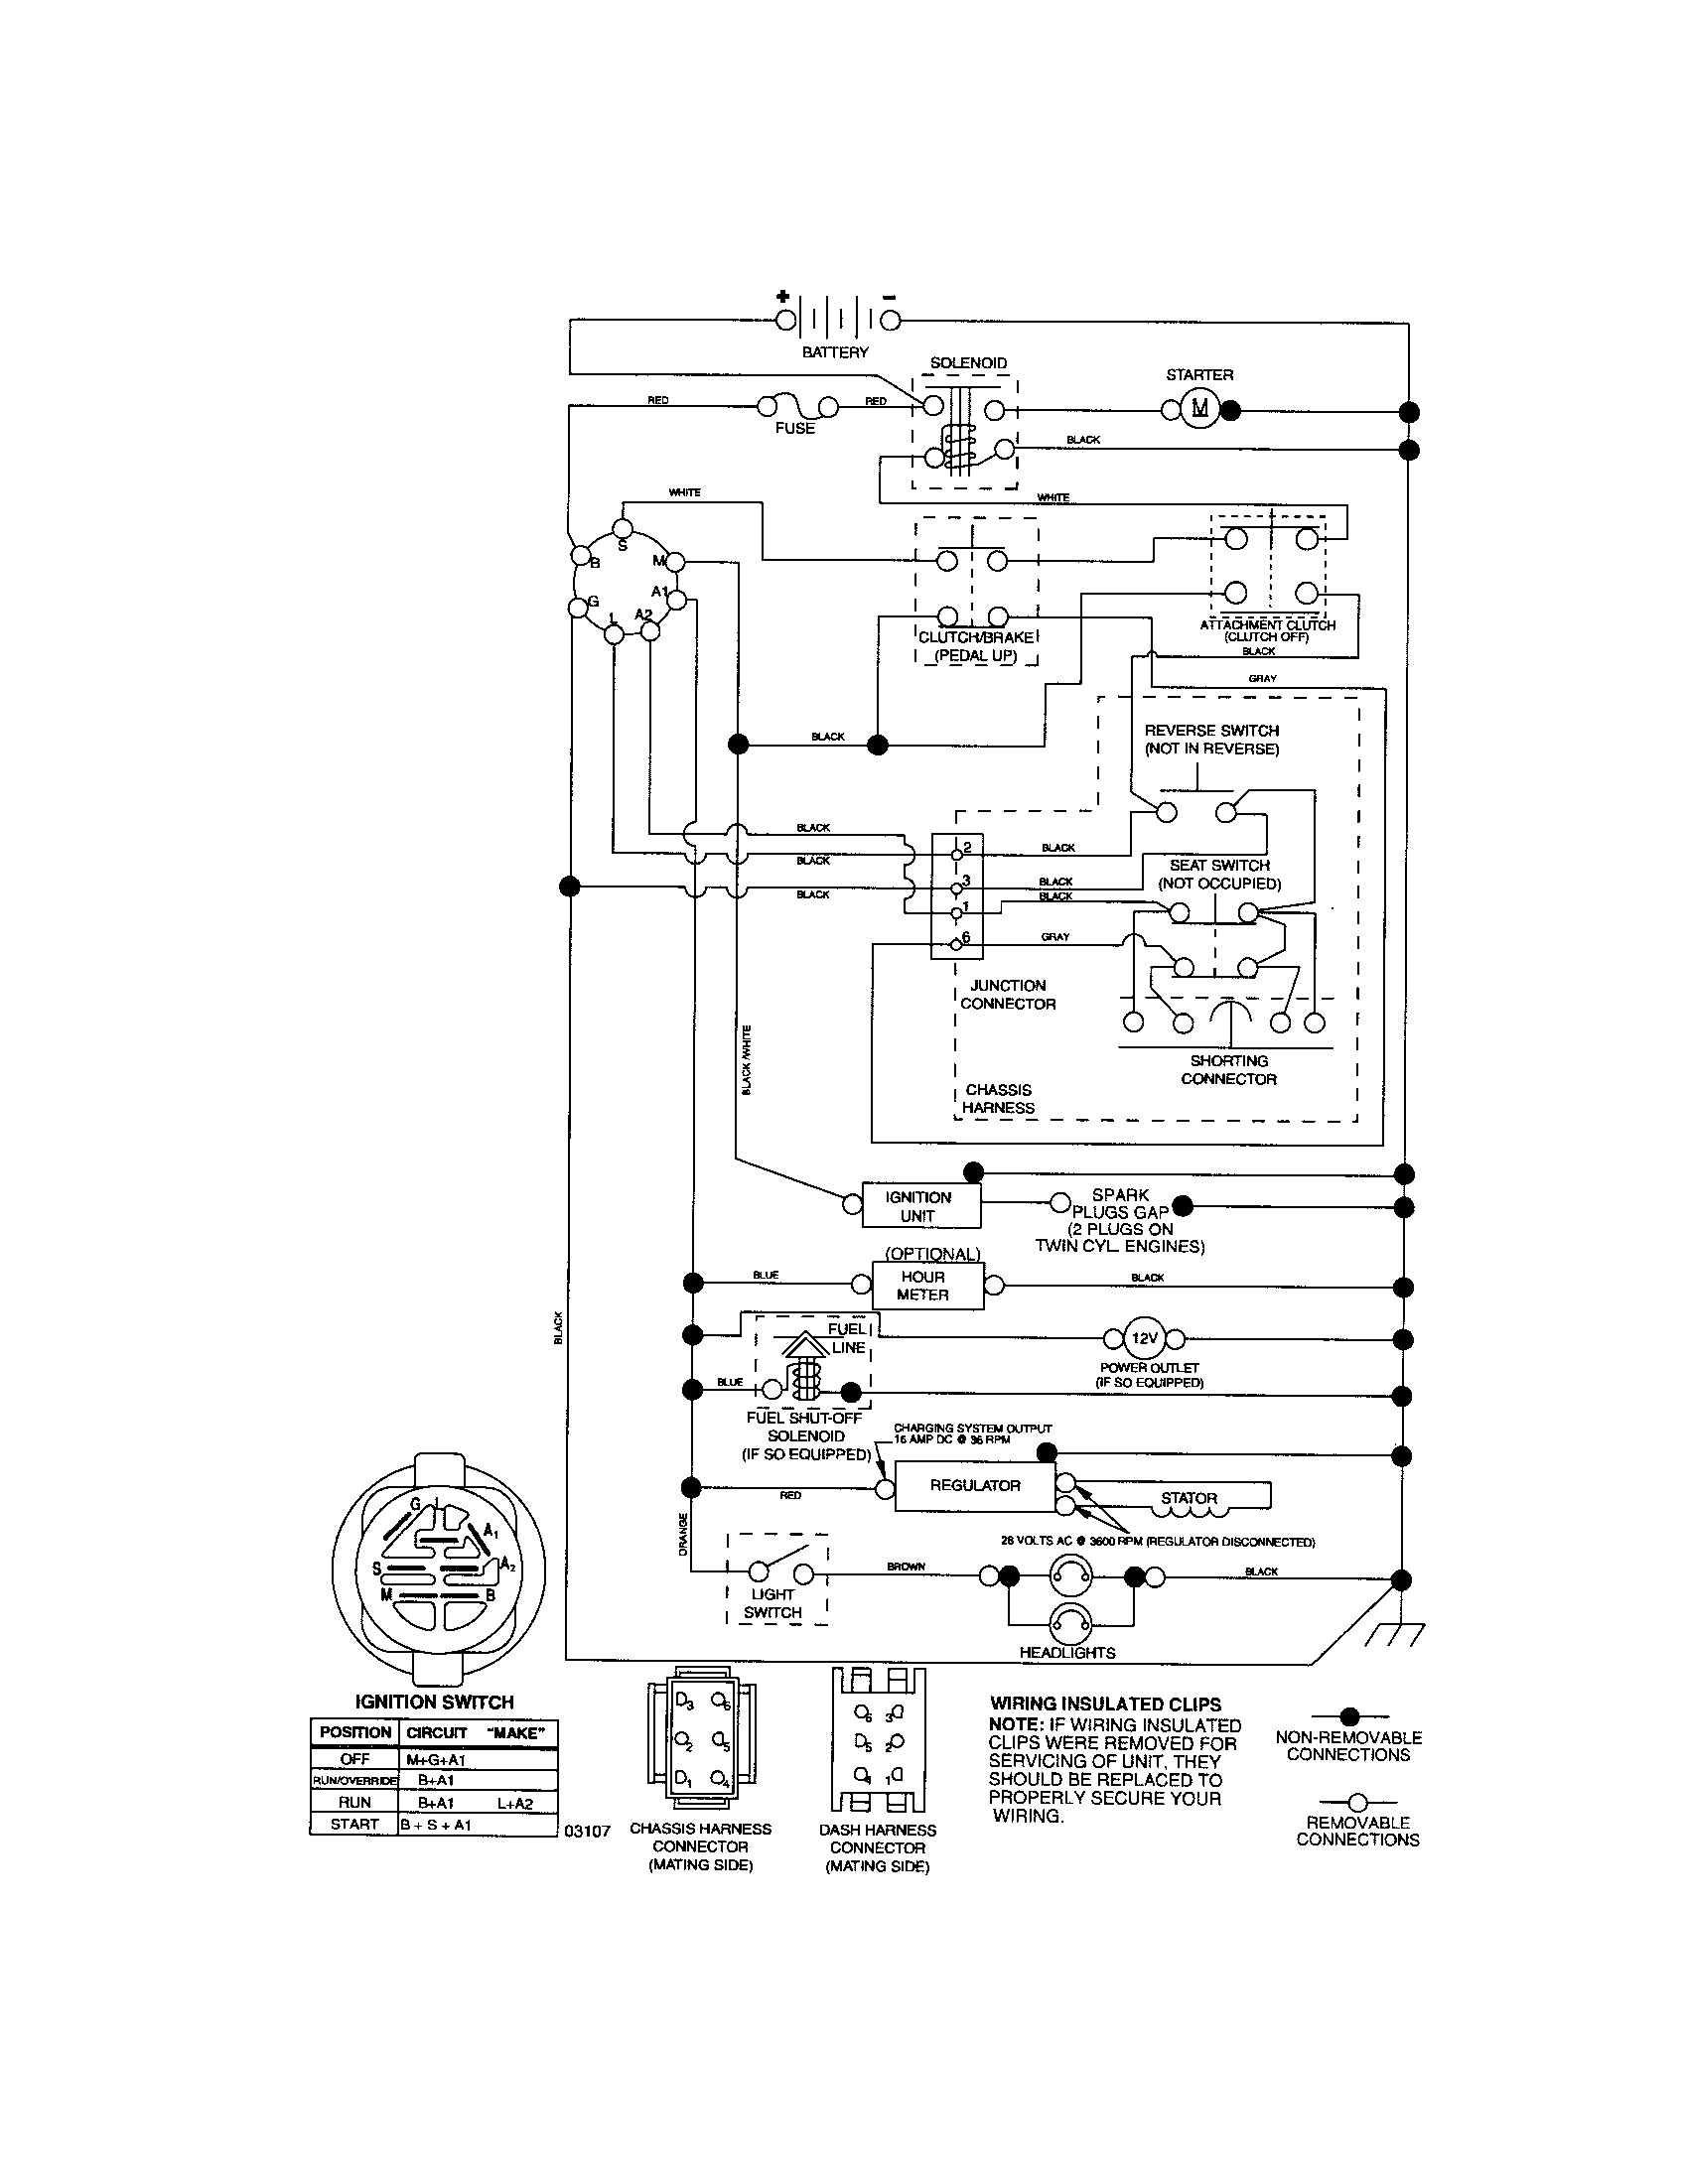 hight resolution of craftsman pto switch wiring diagram free wiring diagram rh ricardolevinsmorales com chelsea electric pto switch wiring